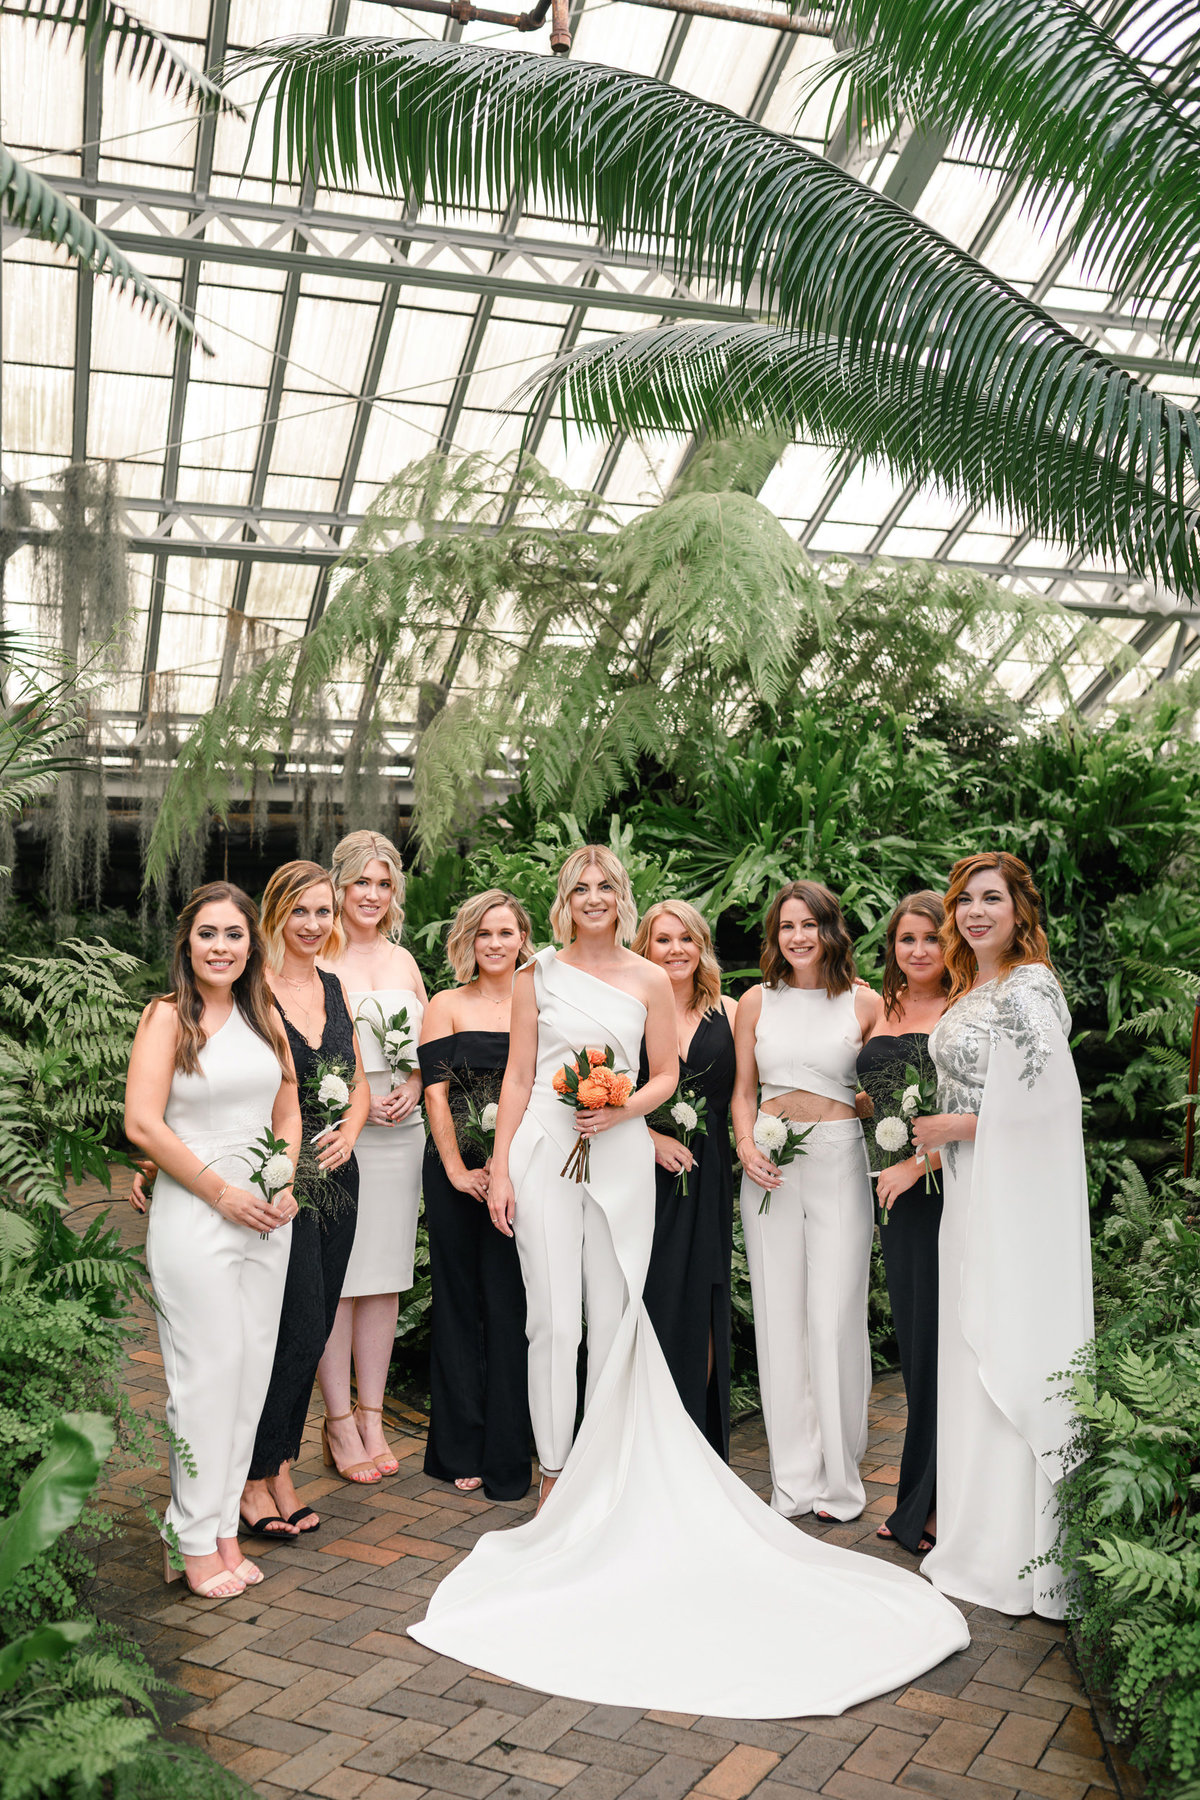 garfield-park-conservatory-chicago-wedding-the-paper-elephant-0012